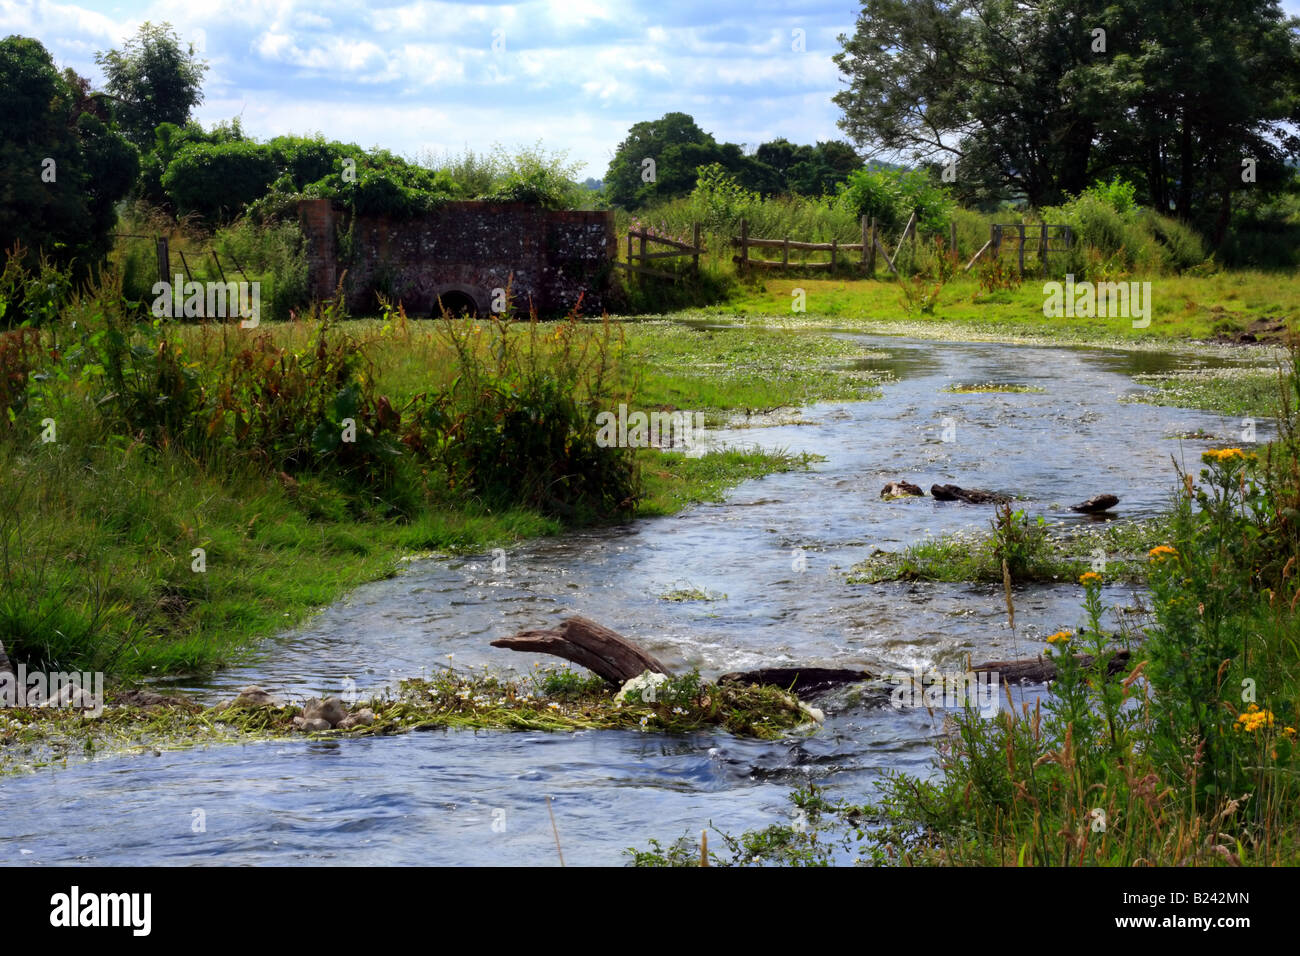 Stream on outskirts of Hambleden Village - Stock Image